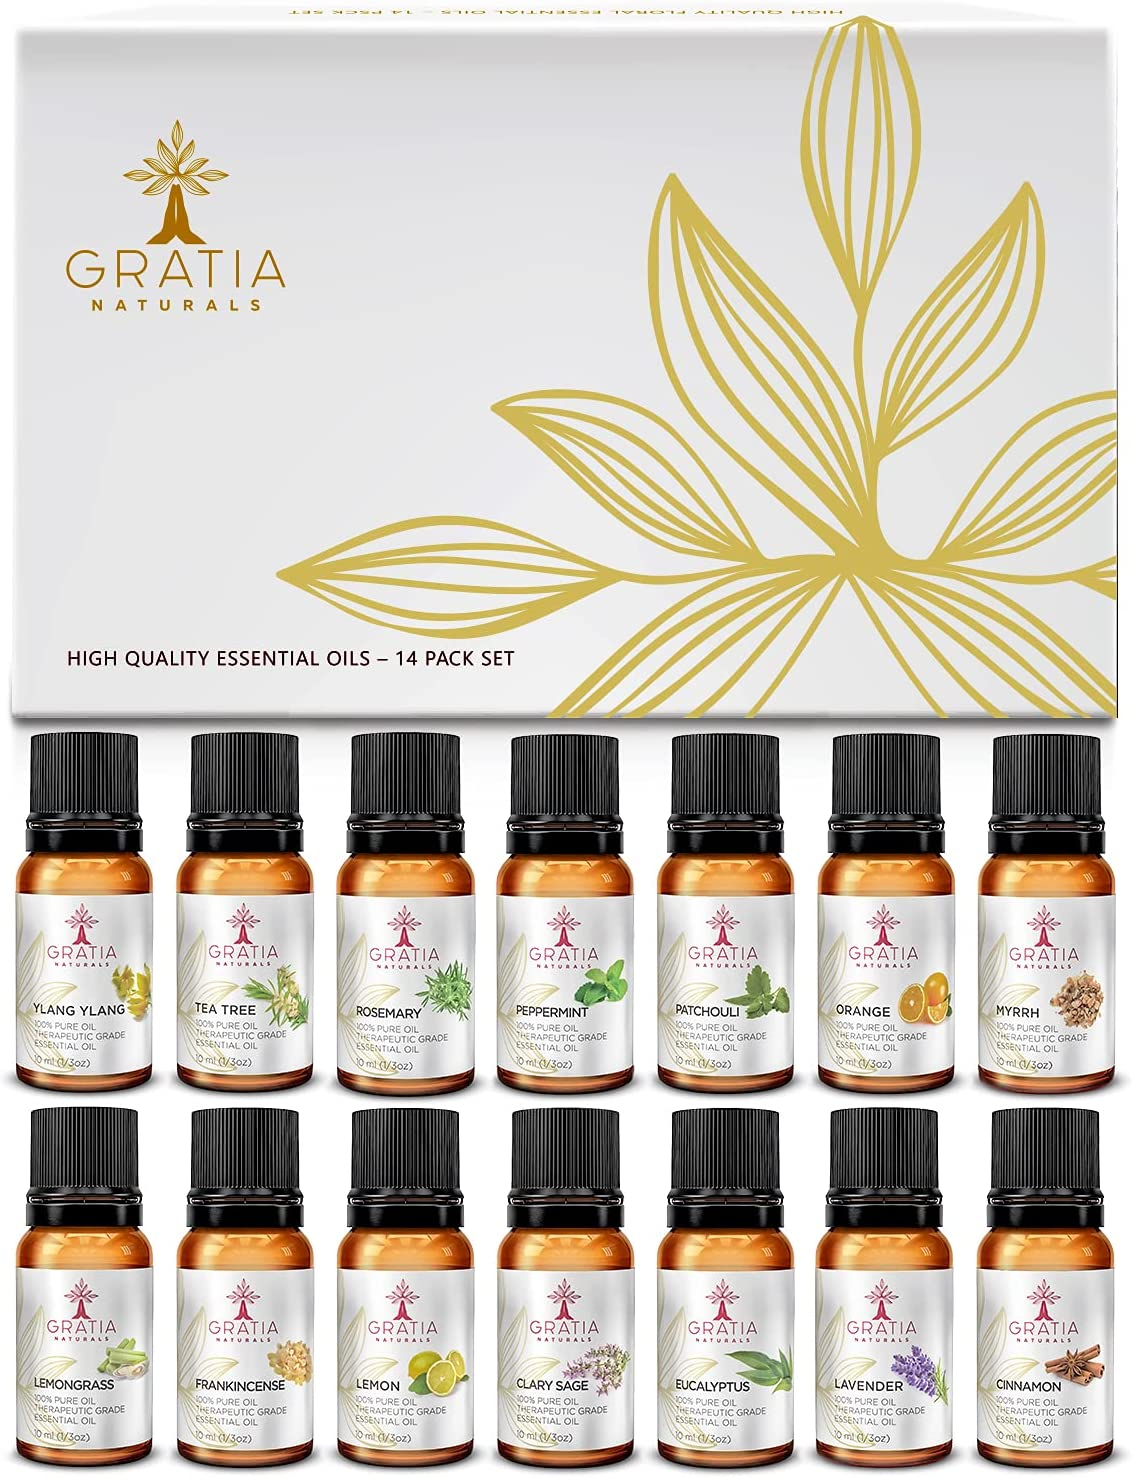 Gratia naturals Top 14 Pure Essential Oils Set – Therapeutic Grade Aromatherapy Essential Oils, 100% Natural Essential Oils for diffusers, humidifiers, Personal Care, soap and Candle DIY - Gift Set